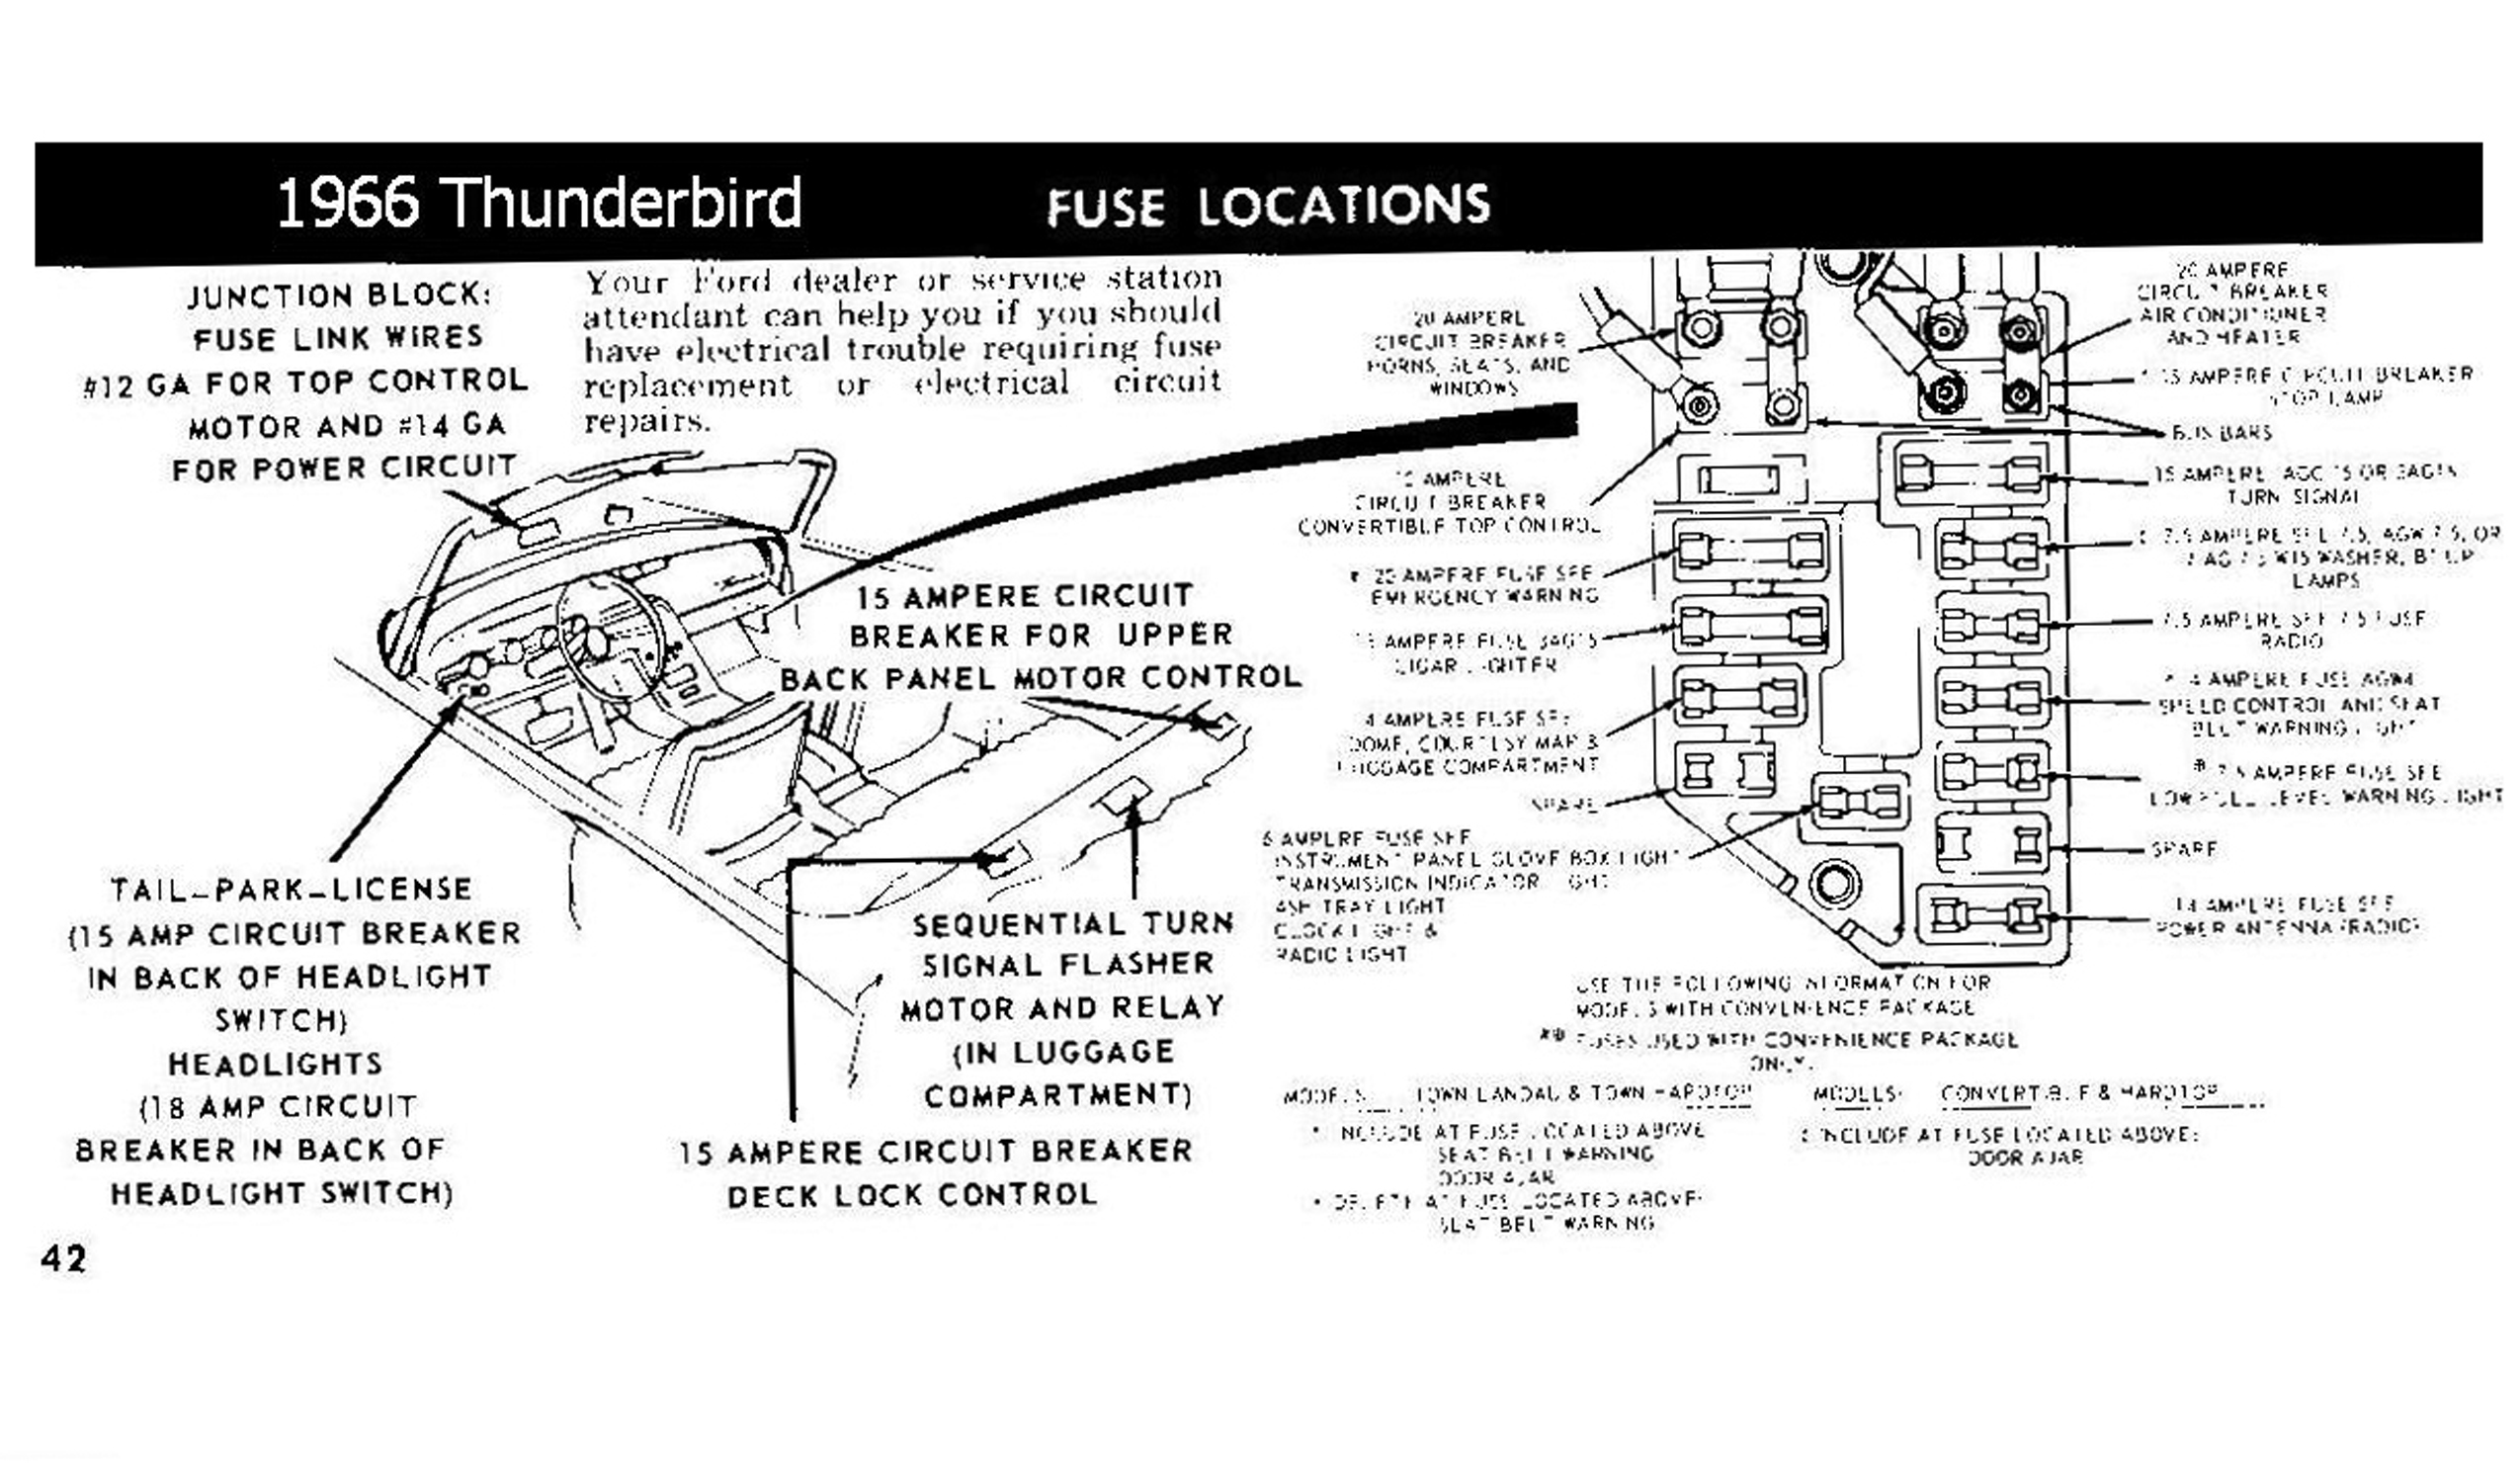 1955 thunderbird fuse box location   34 wiring diagram